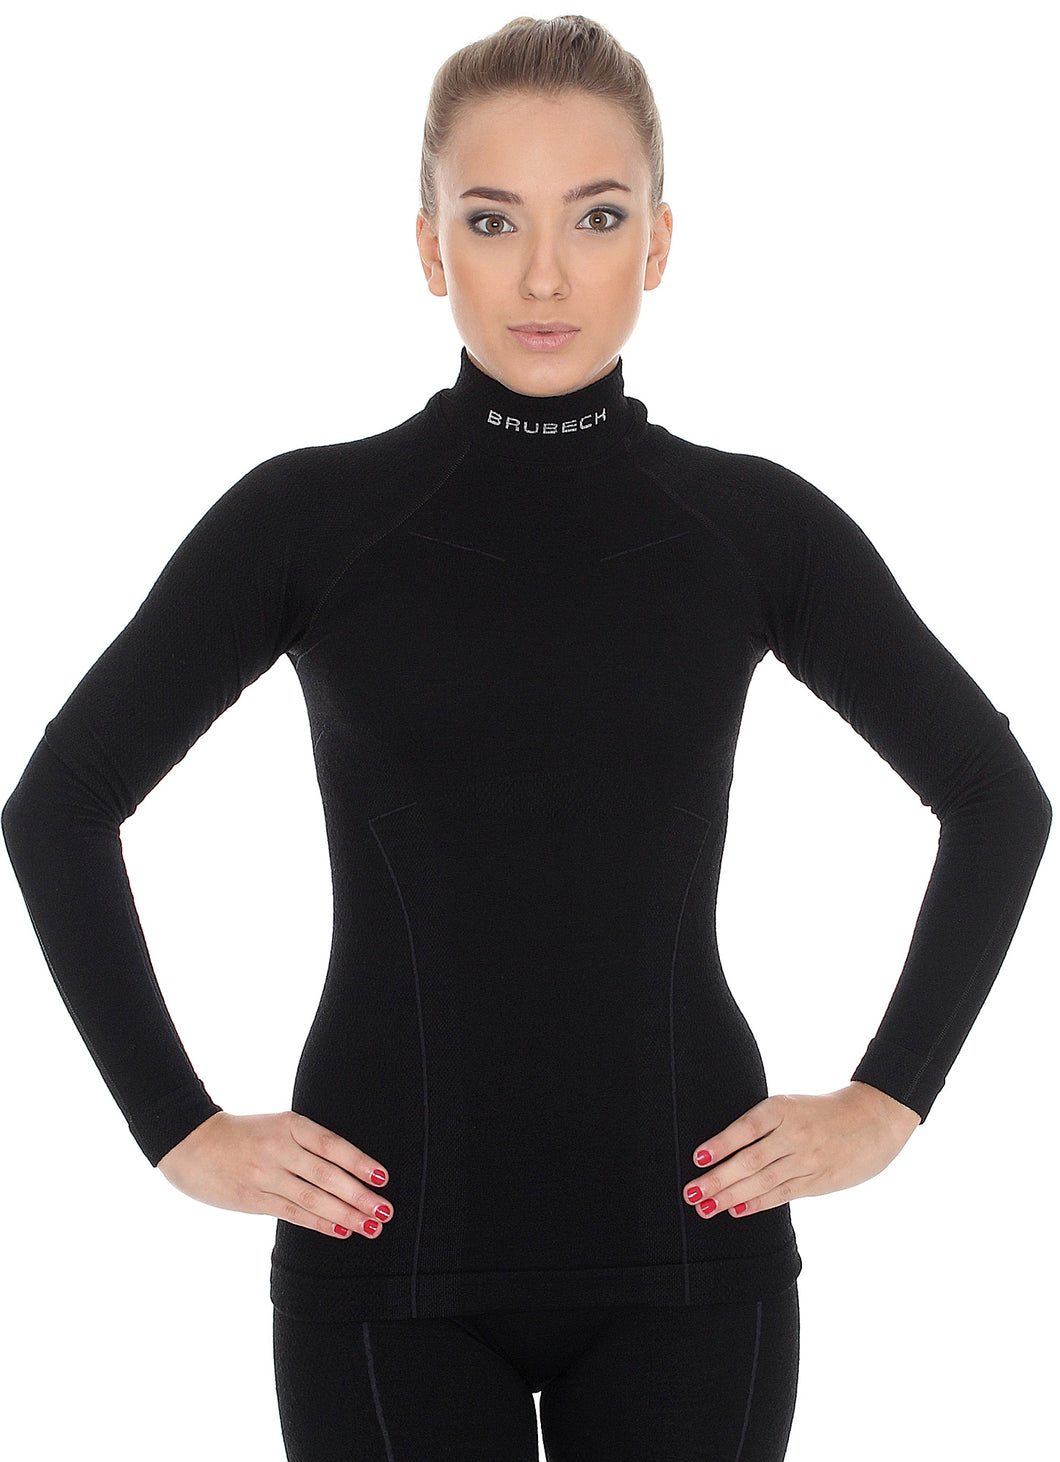 Women's Top EXTREME WOOL Long Sleeve Black Front